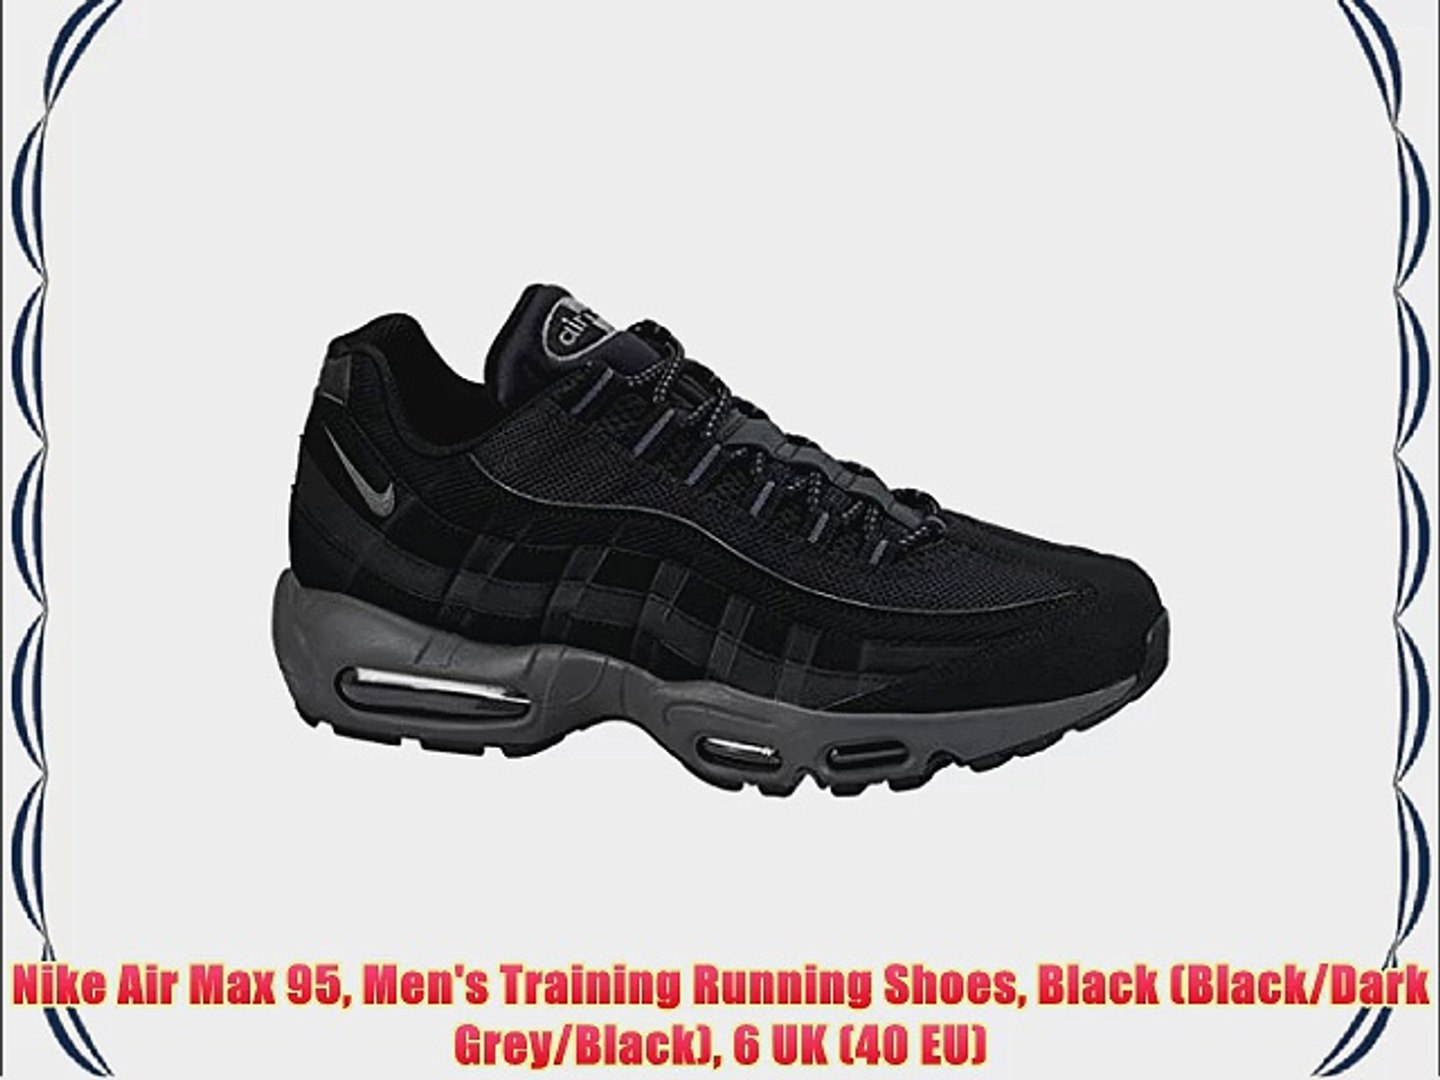 Nike Air Max 95 Men's Training Running Shoes Black (BlackDark GreyBlack) 6 UK (40 EU)